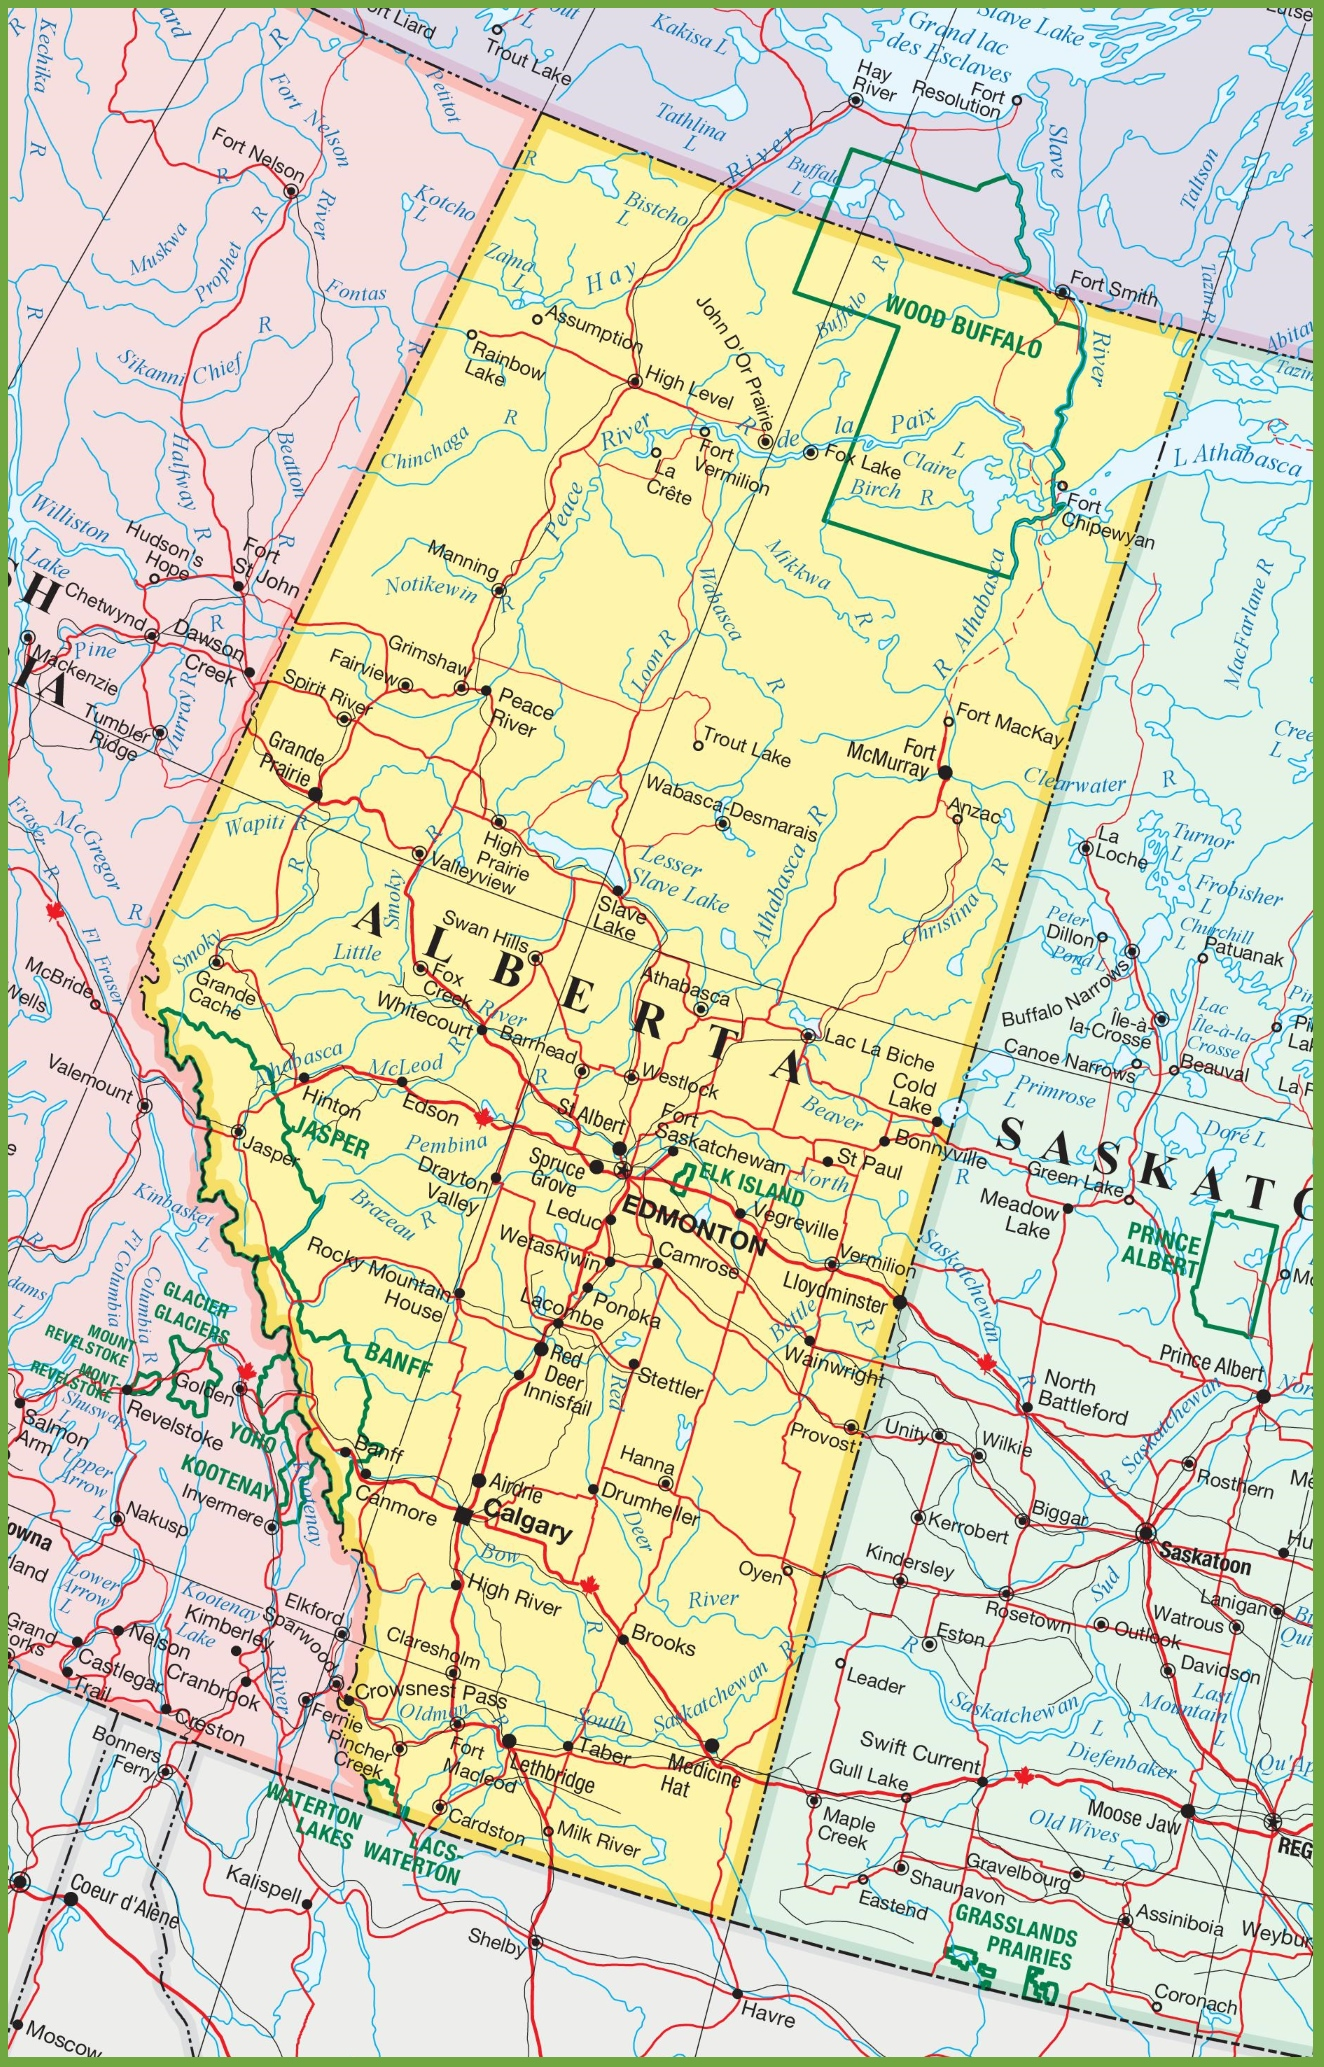 Alberta Map Of Canada Large detailed map of Alberta with cities and towns